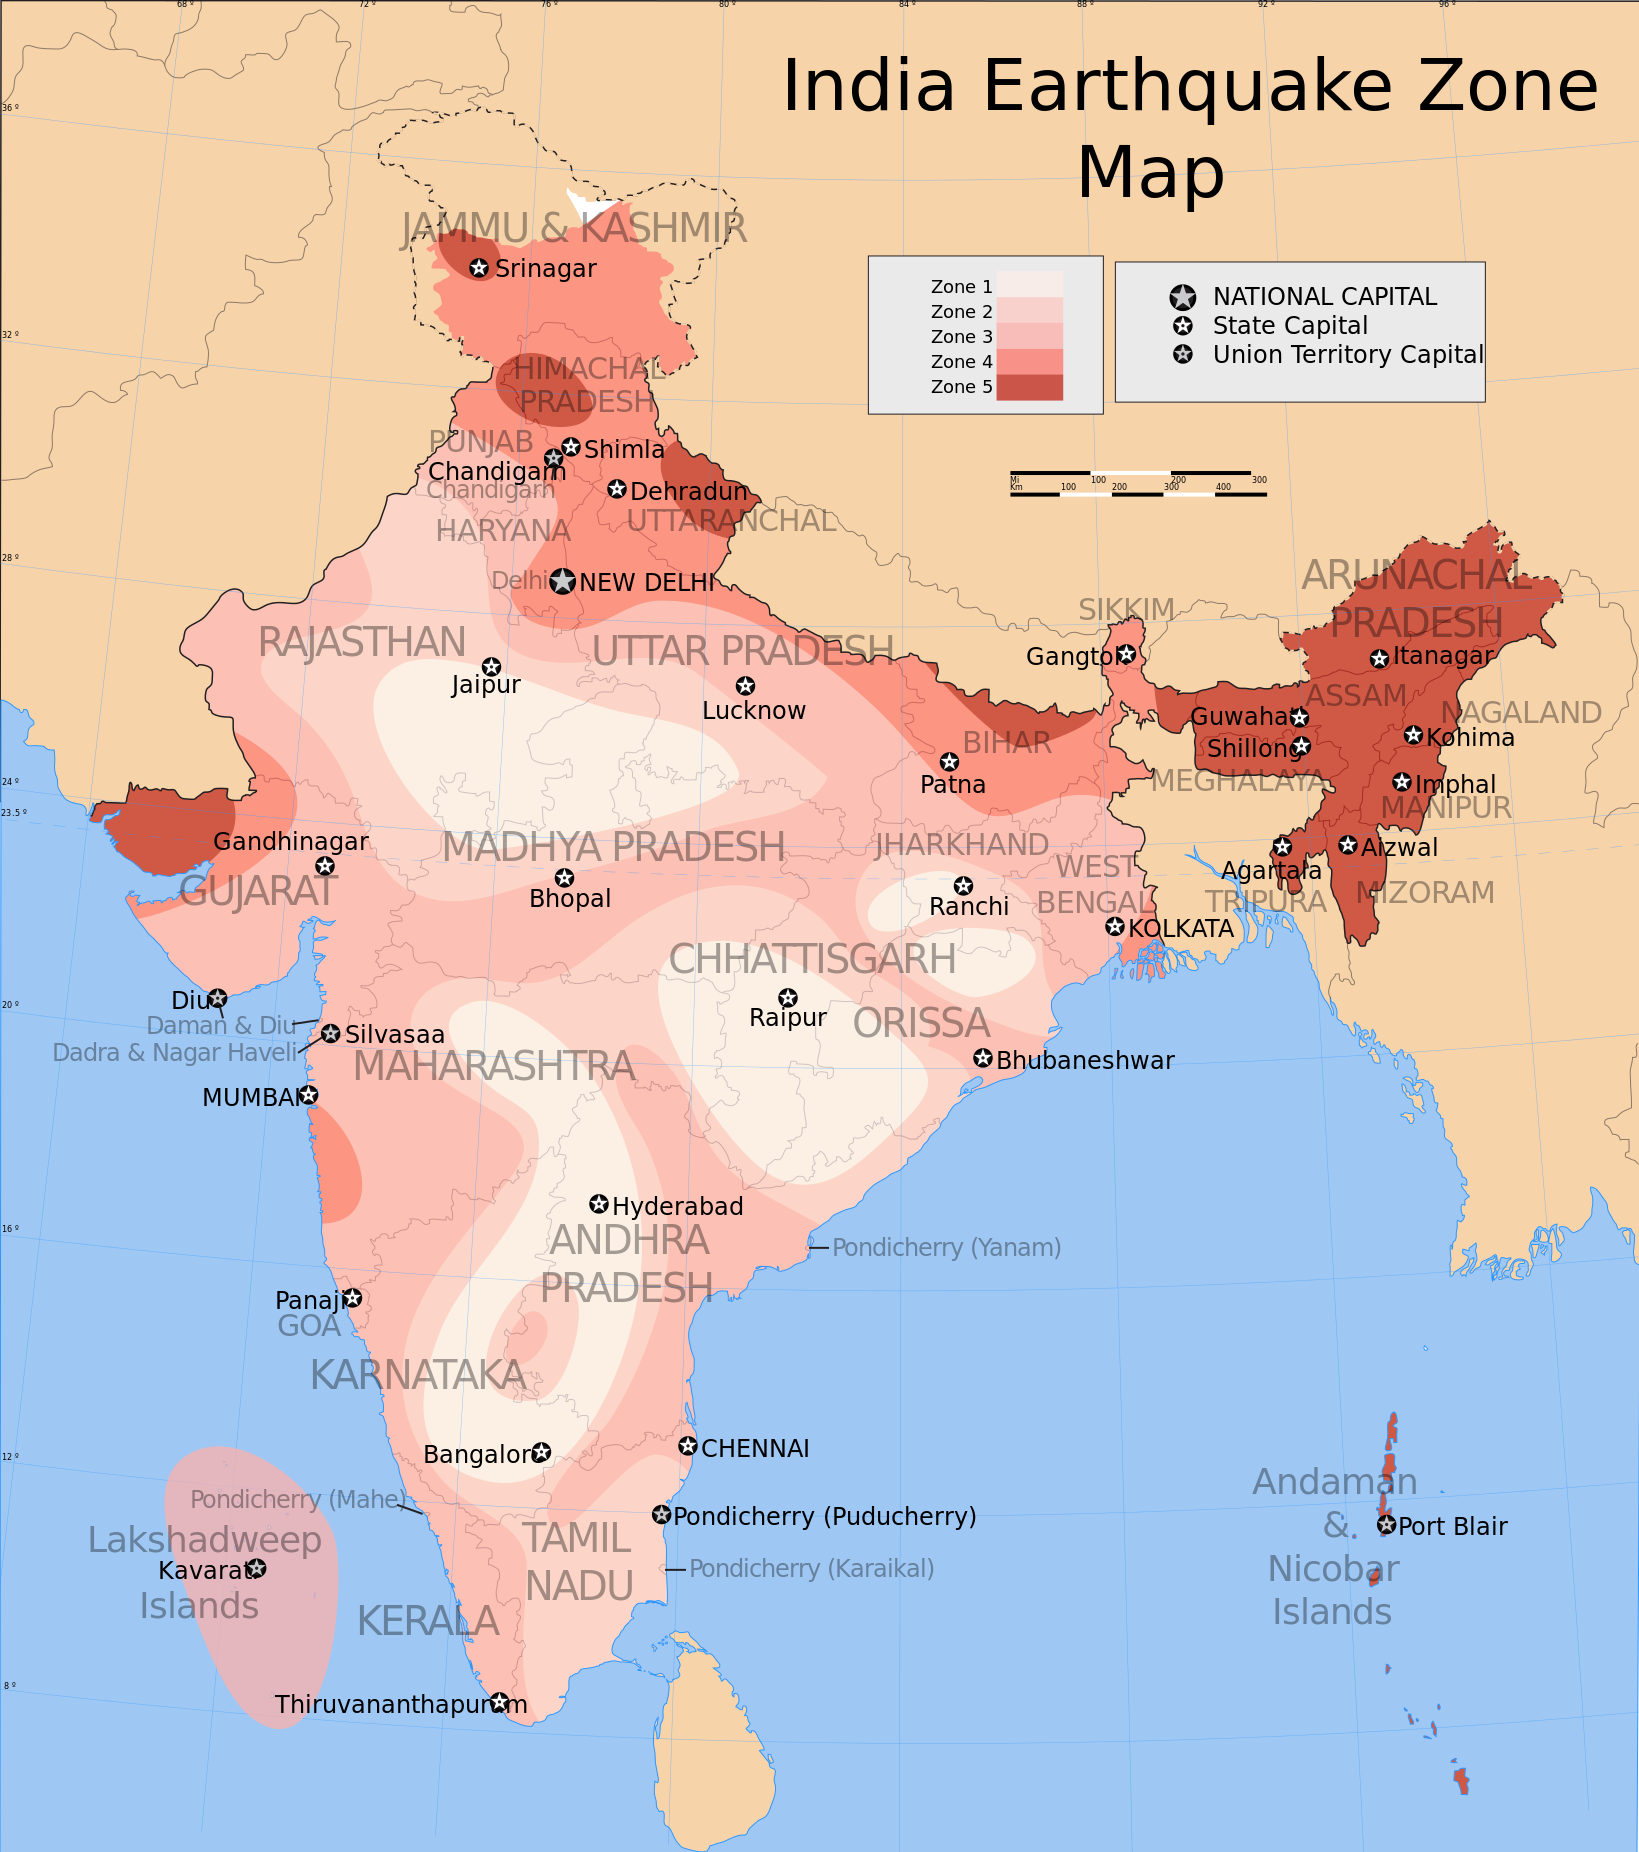 India_earthquake_zone_map_en.png